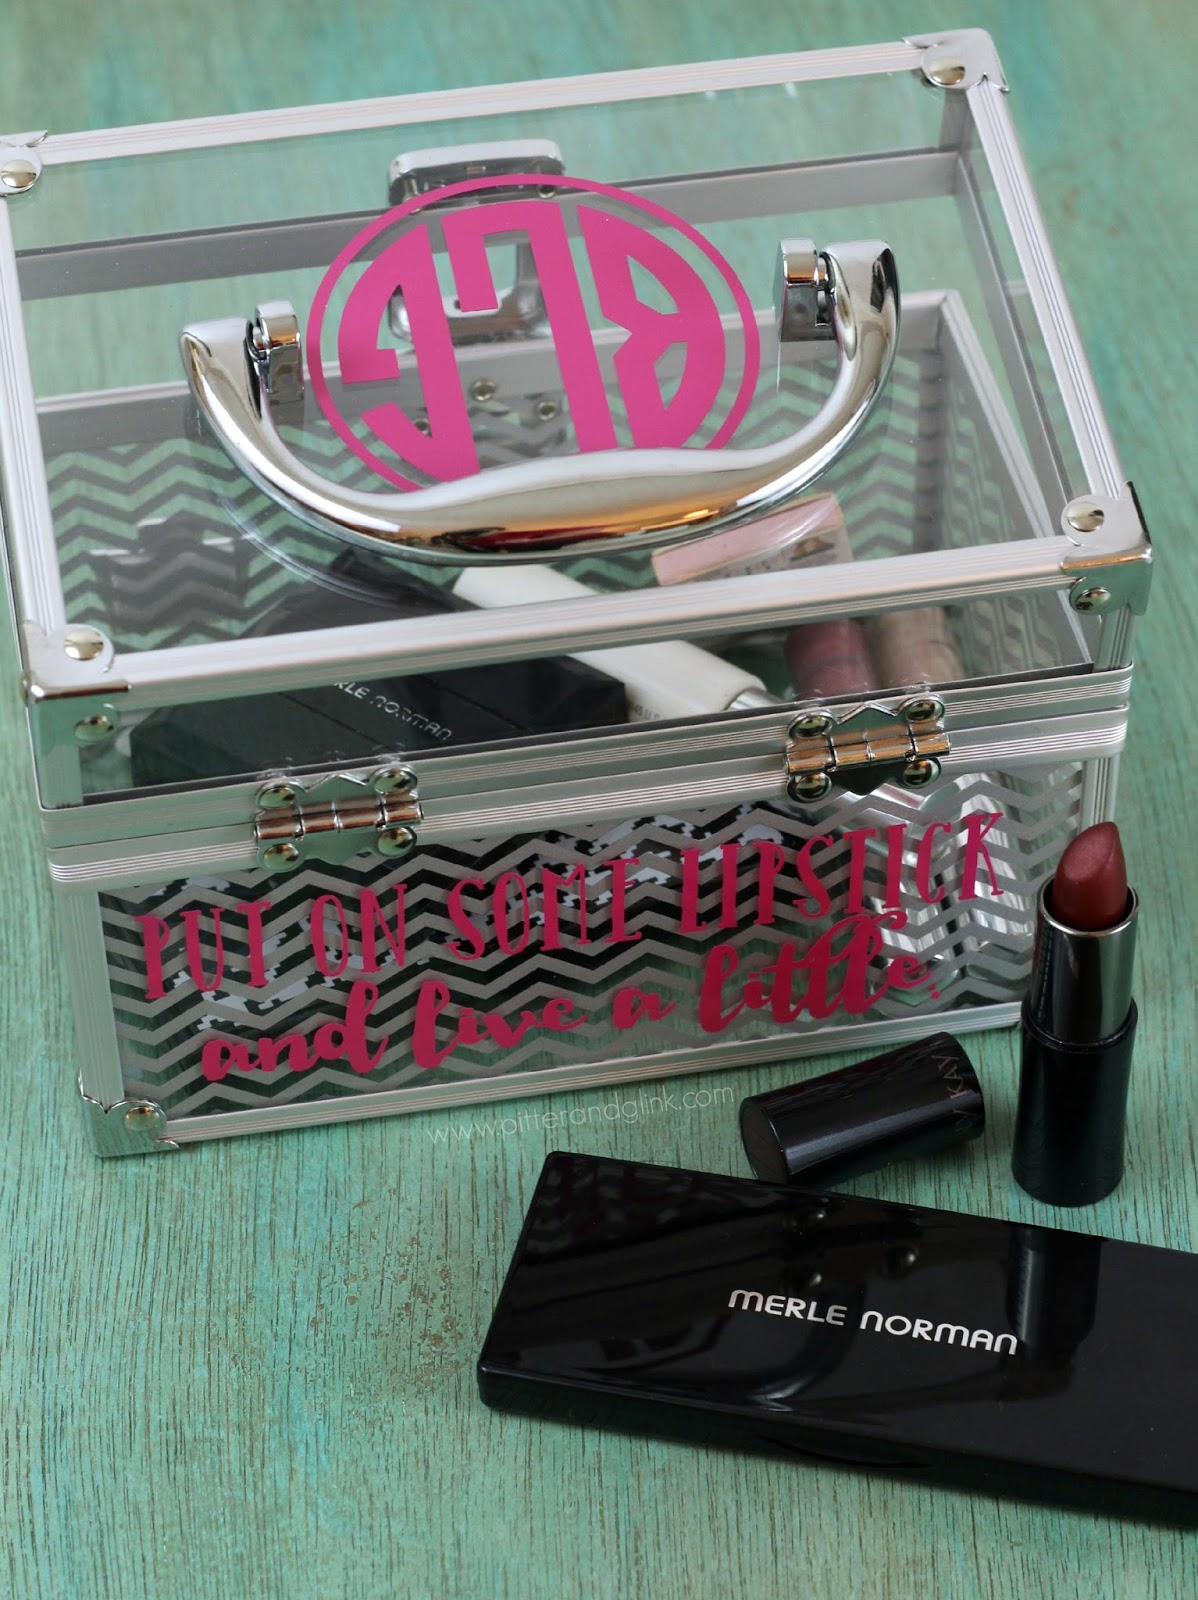 Organize your makeup with style in this monogrammed makeup case.  www.pitterandglink.com